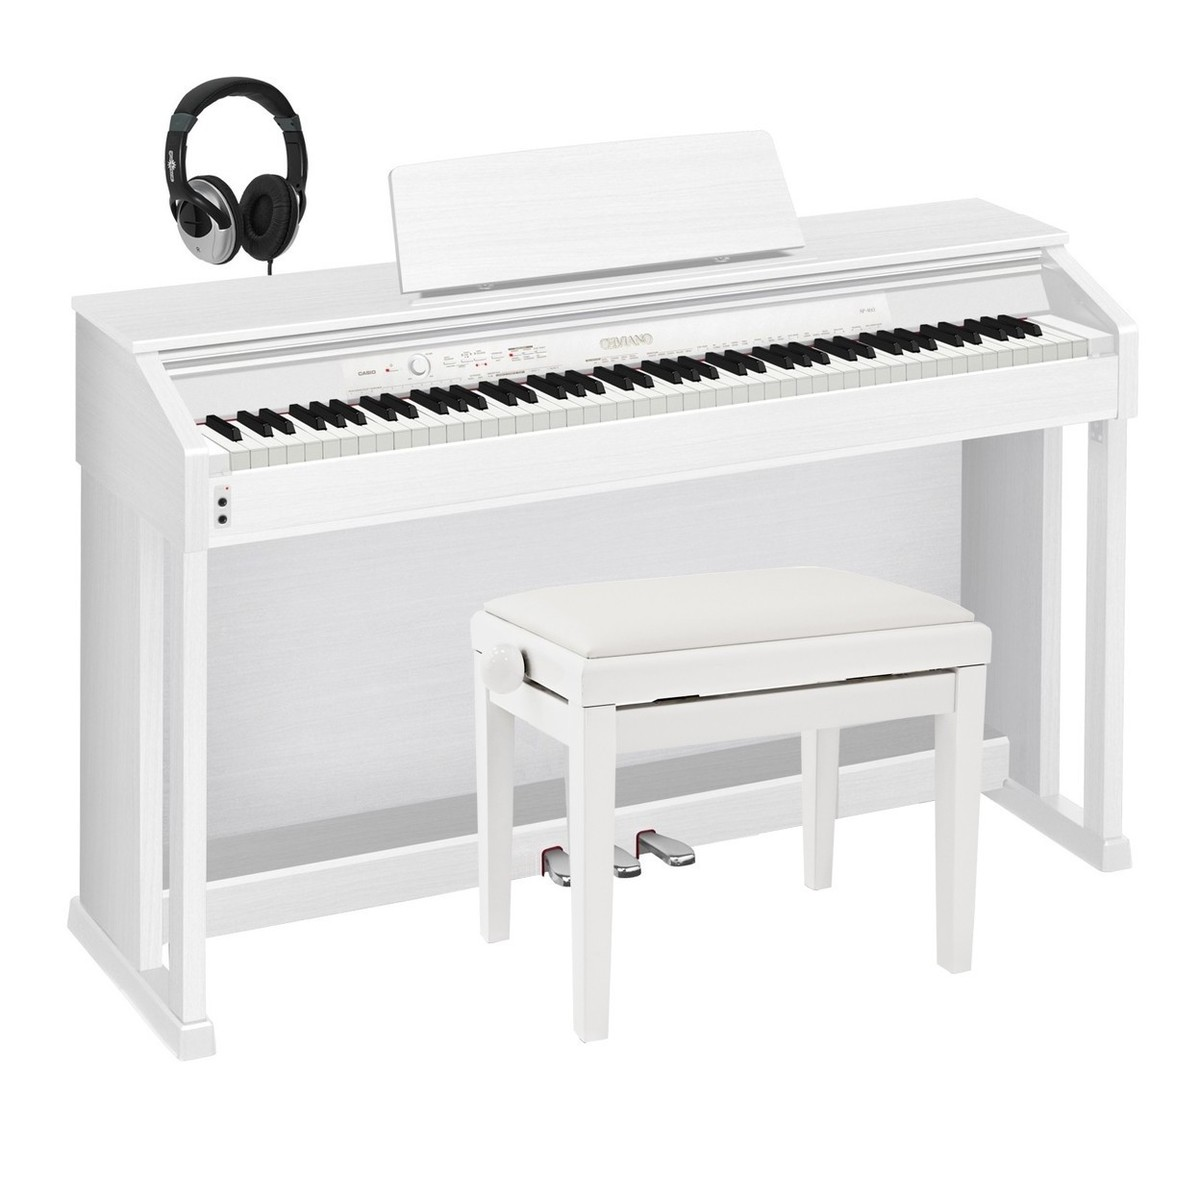 Casio Celviano AP-460 Piano Pack. Loading zoom  sc 1 st  Gear4music & Casio Celviano AP 460 Digital Piano White with Stool and ... islam-shia.org